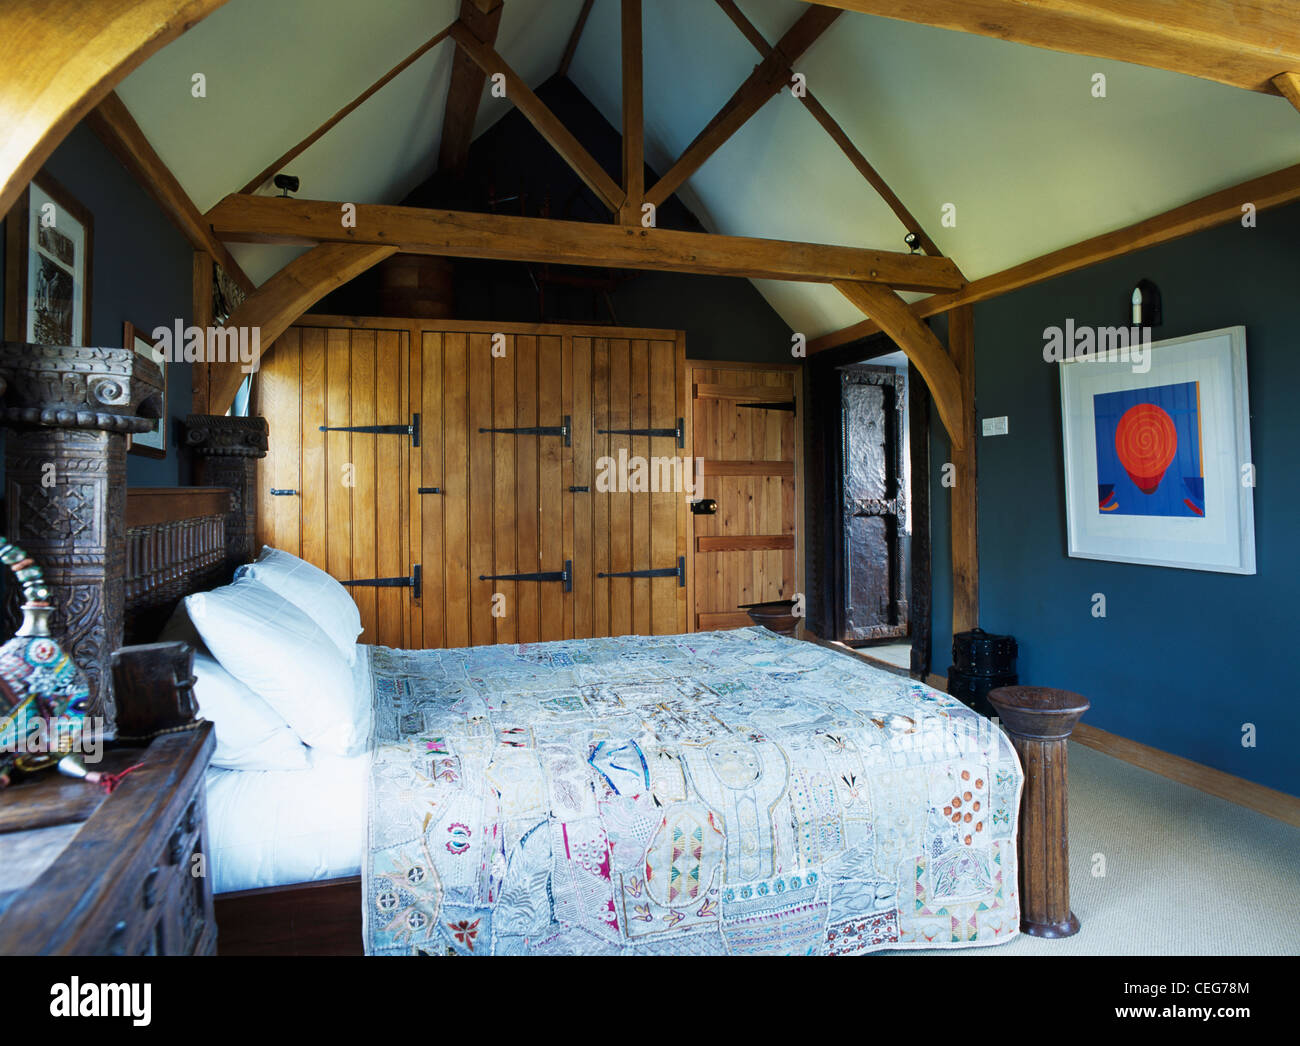 Built In Wardrobes With Unpainted Wooden Doors In Dark Blue Bedroom With  Exposed Wooden Beams And Carved Wooden Bed